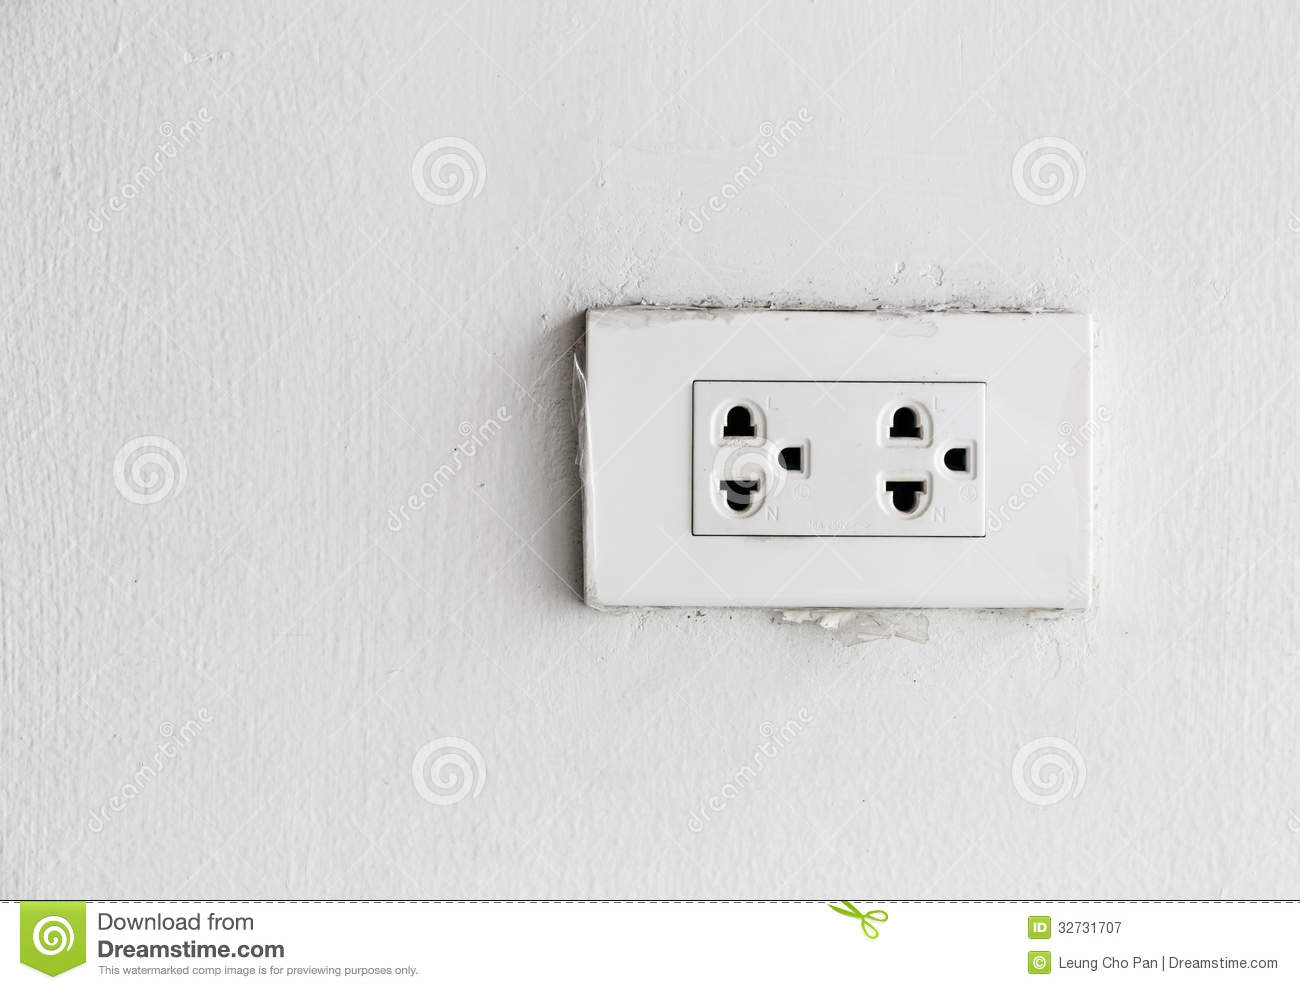 how to add a power outlet to a wall